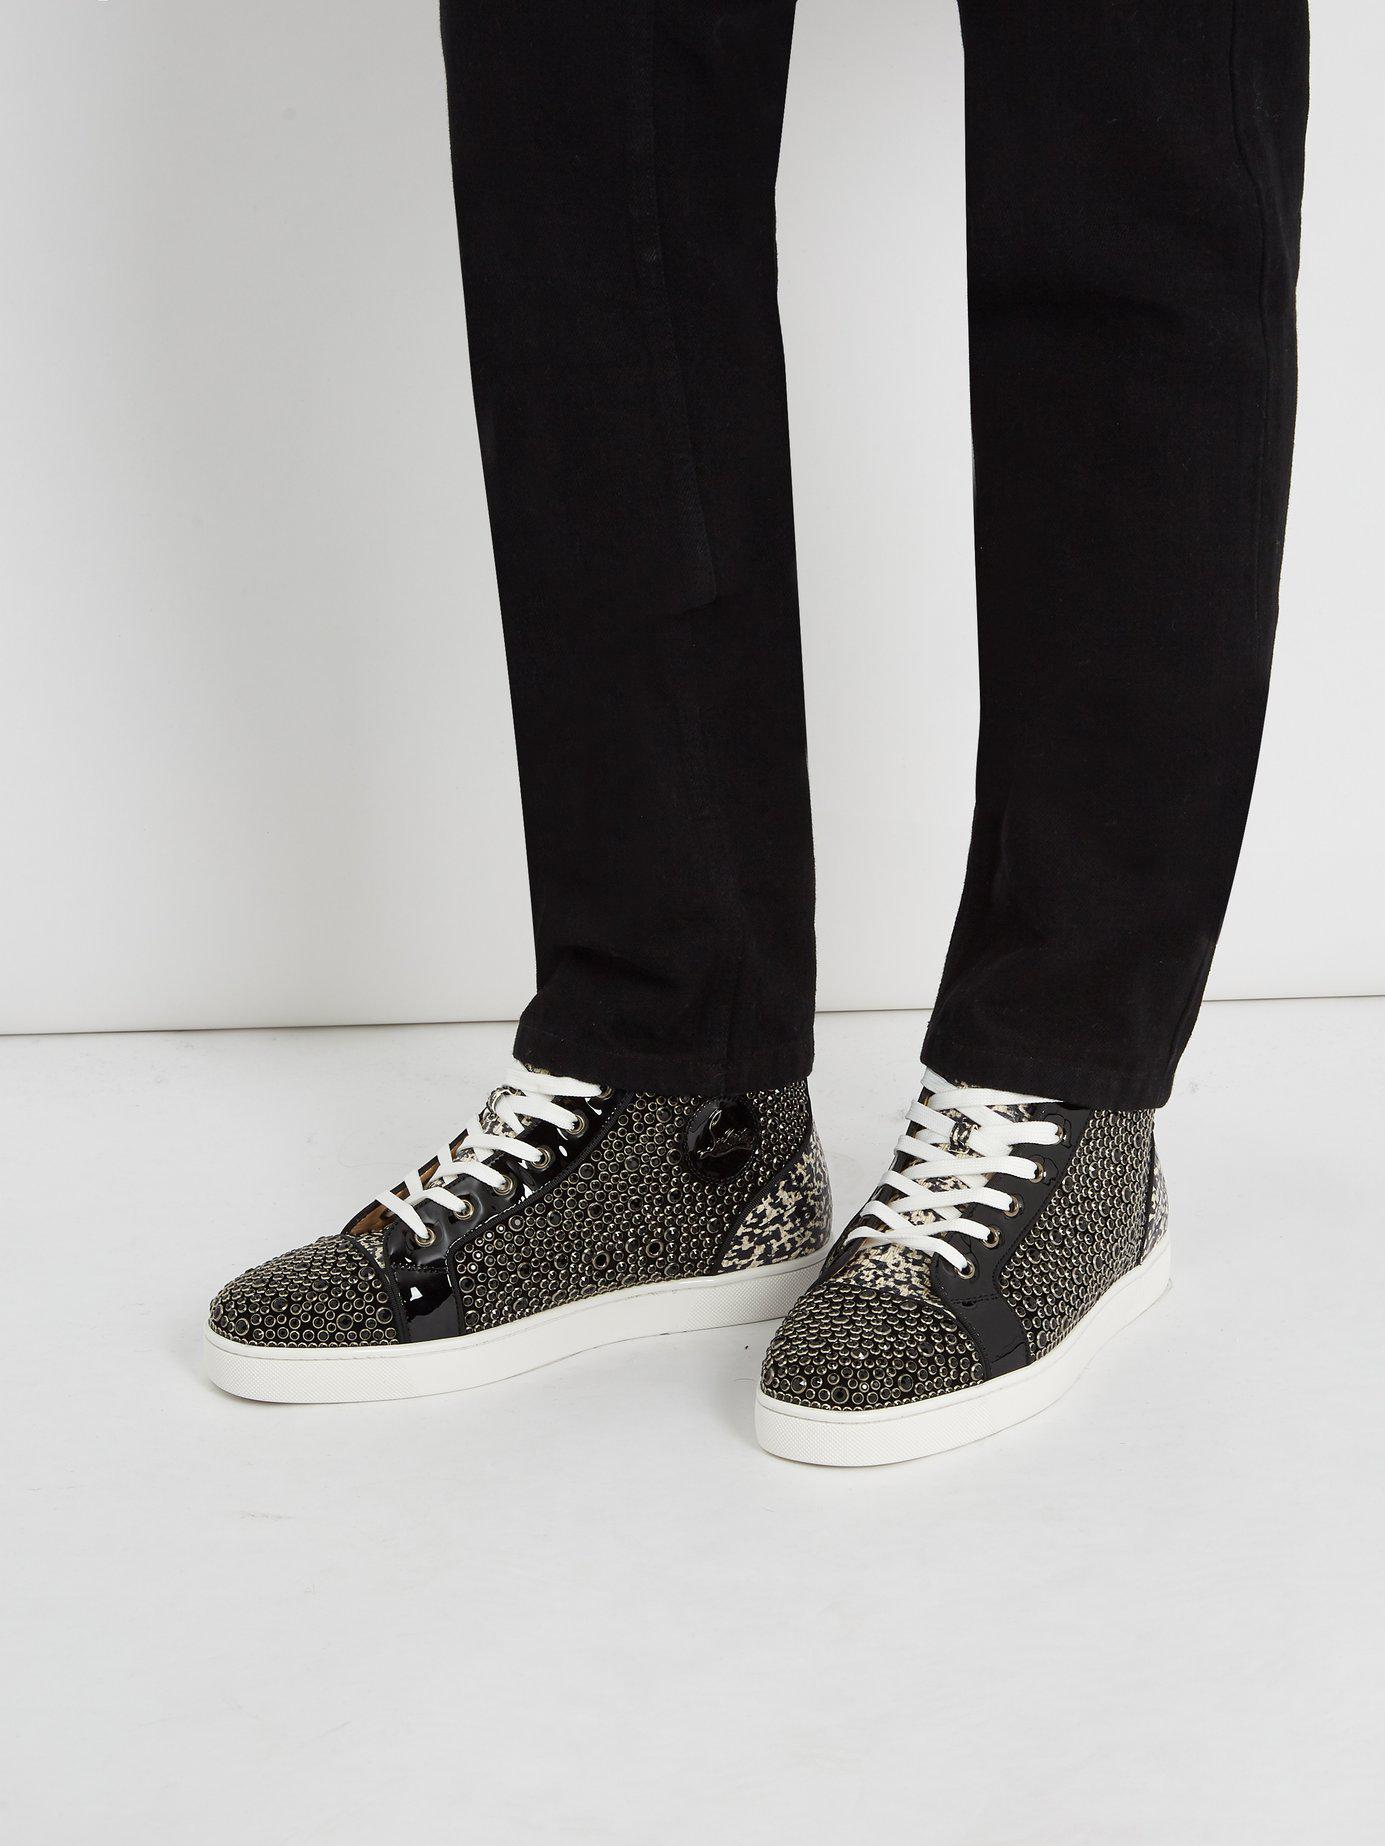 bad5836cec1f Lyst - Christian Louboutin Louis Orlato High Top Patent Leather Trainers in  Black for Men